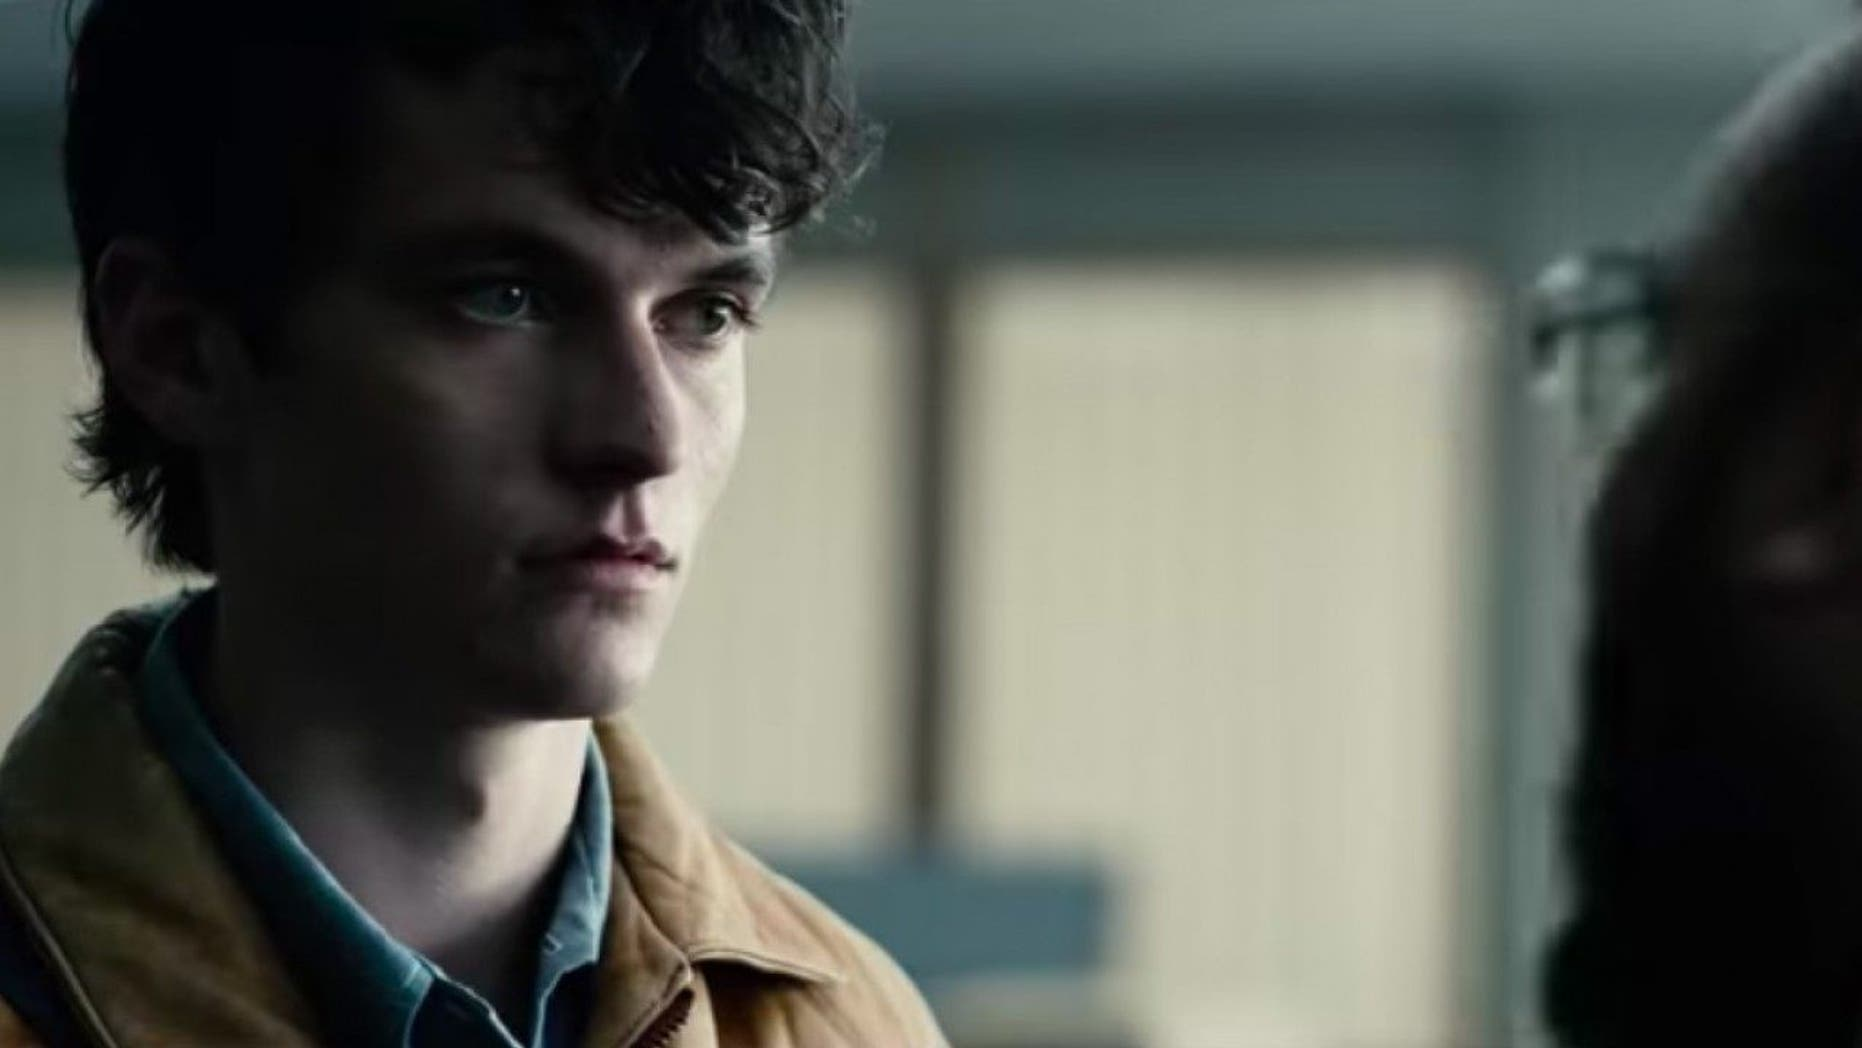 Who Stars in Netflix's 'Black Mirror' Movie 'Bandersnatch?'